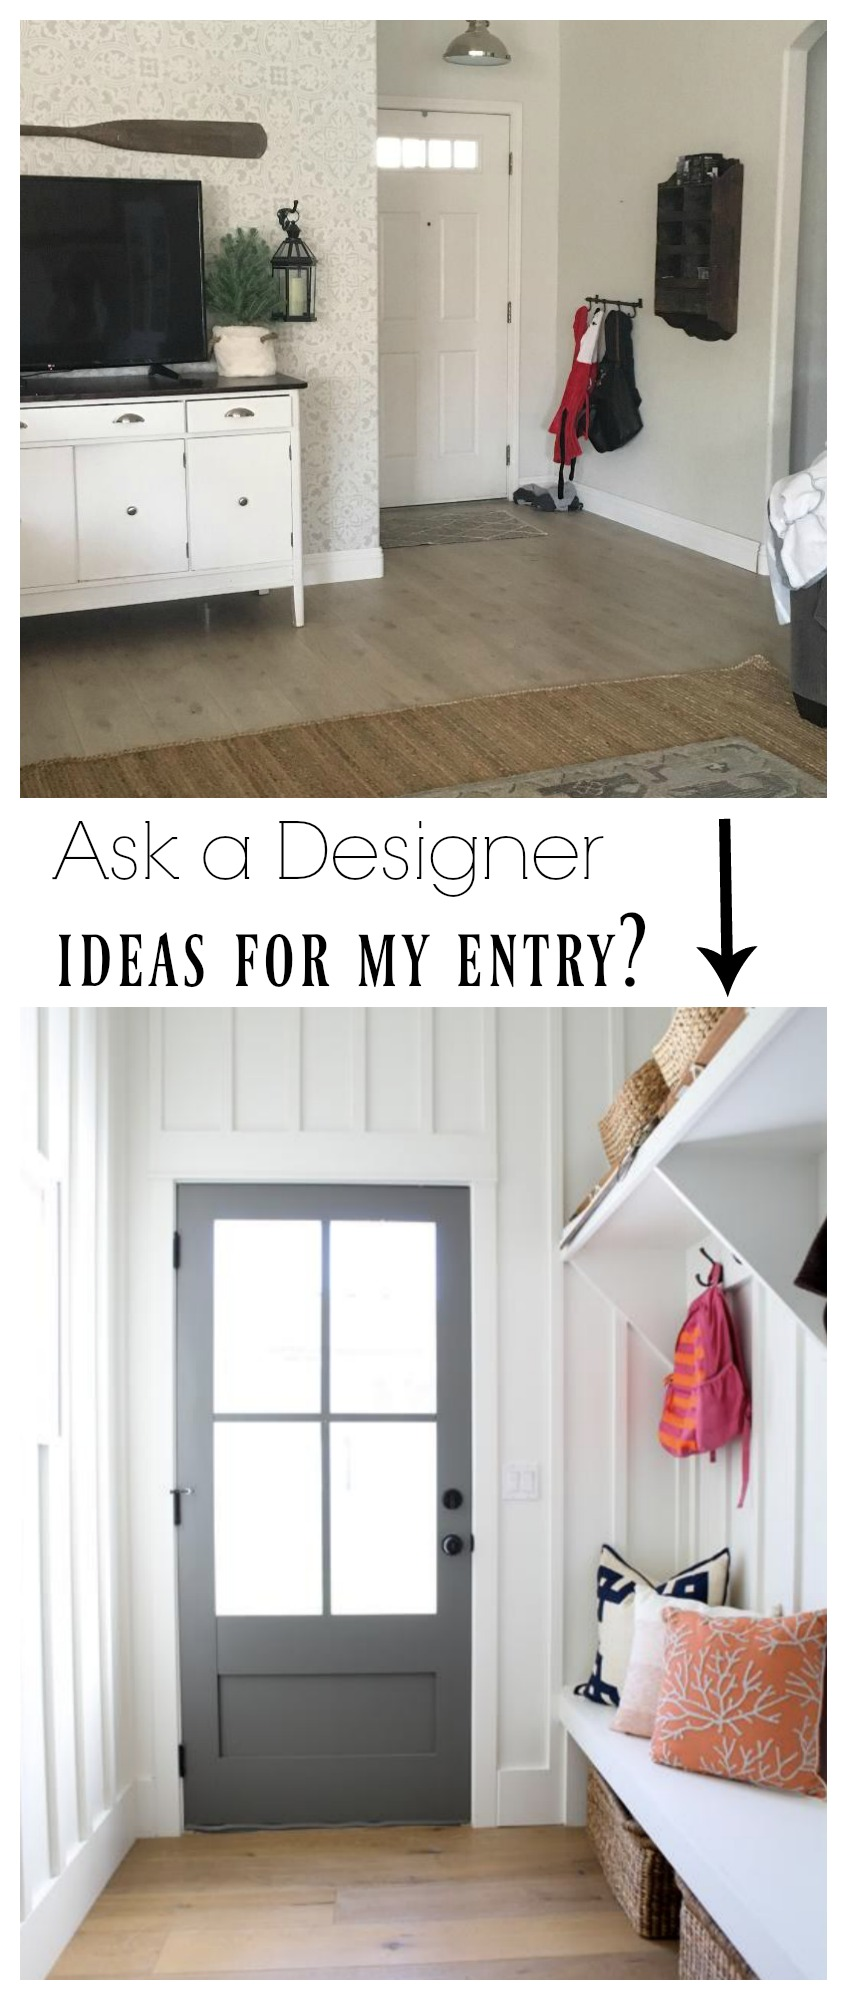 ask a designer ideas for my small entry - Designer Ideas